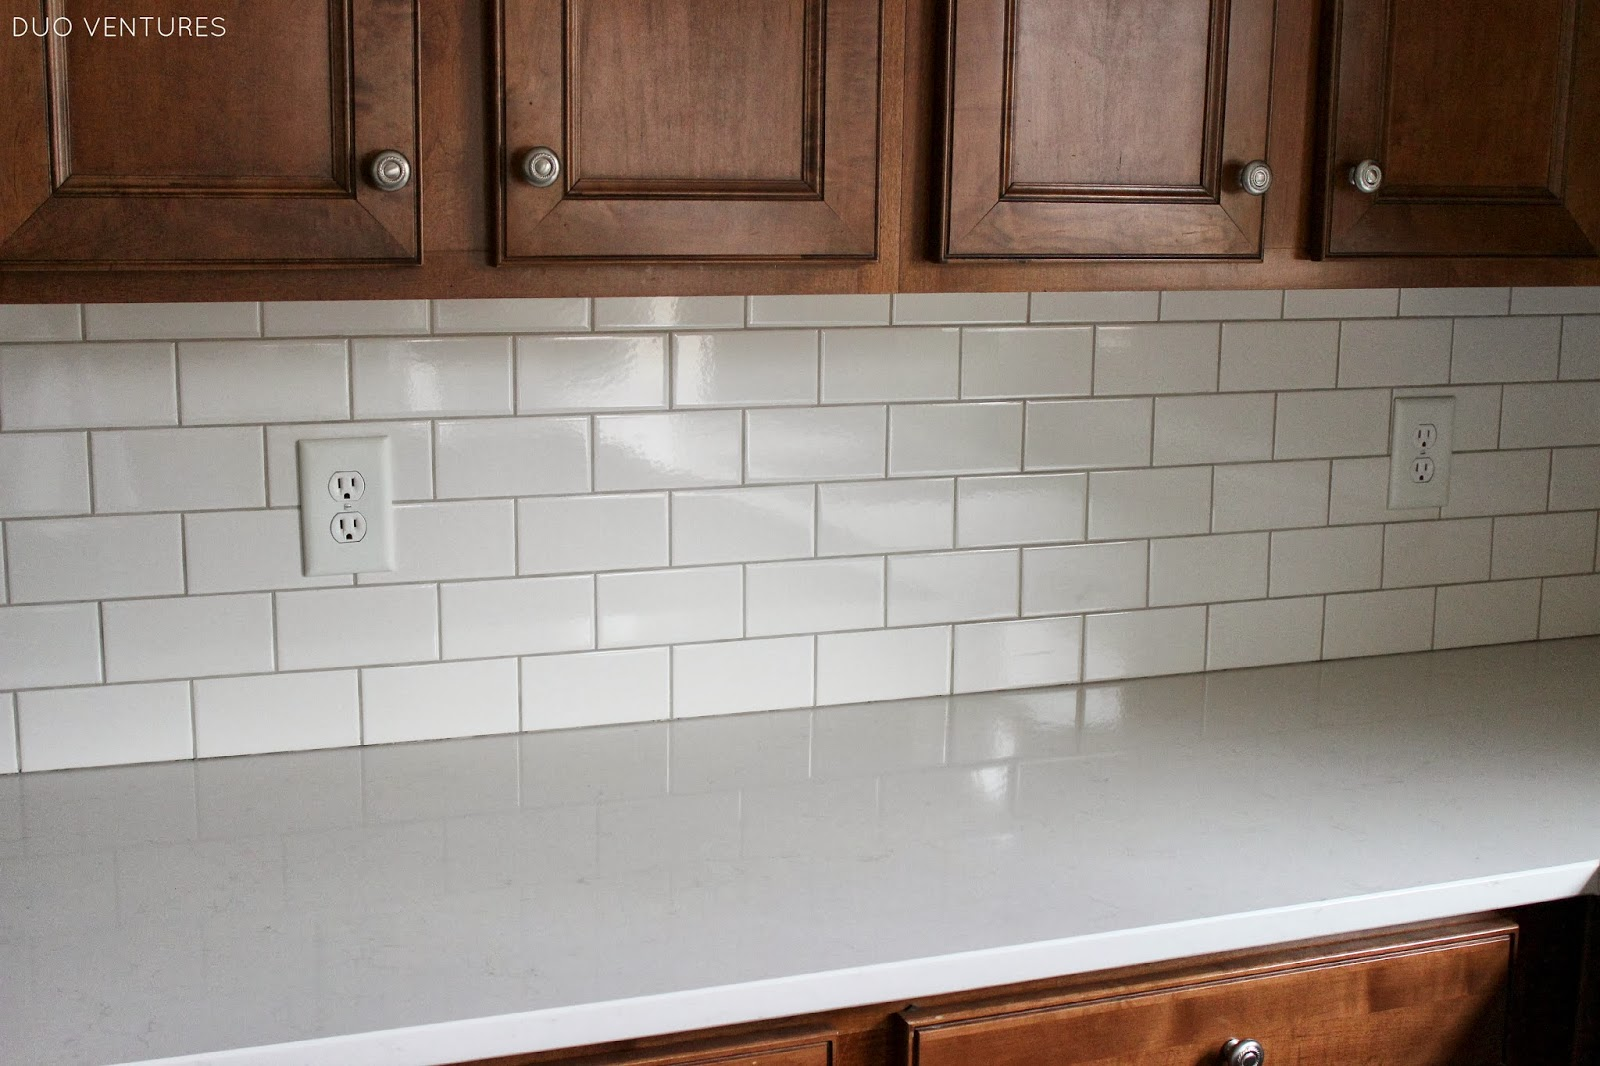 Duo Ventures: Kitchen Update: Grouting & Caulking Subway Tile Backsplash